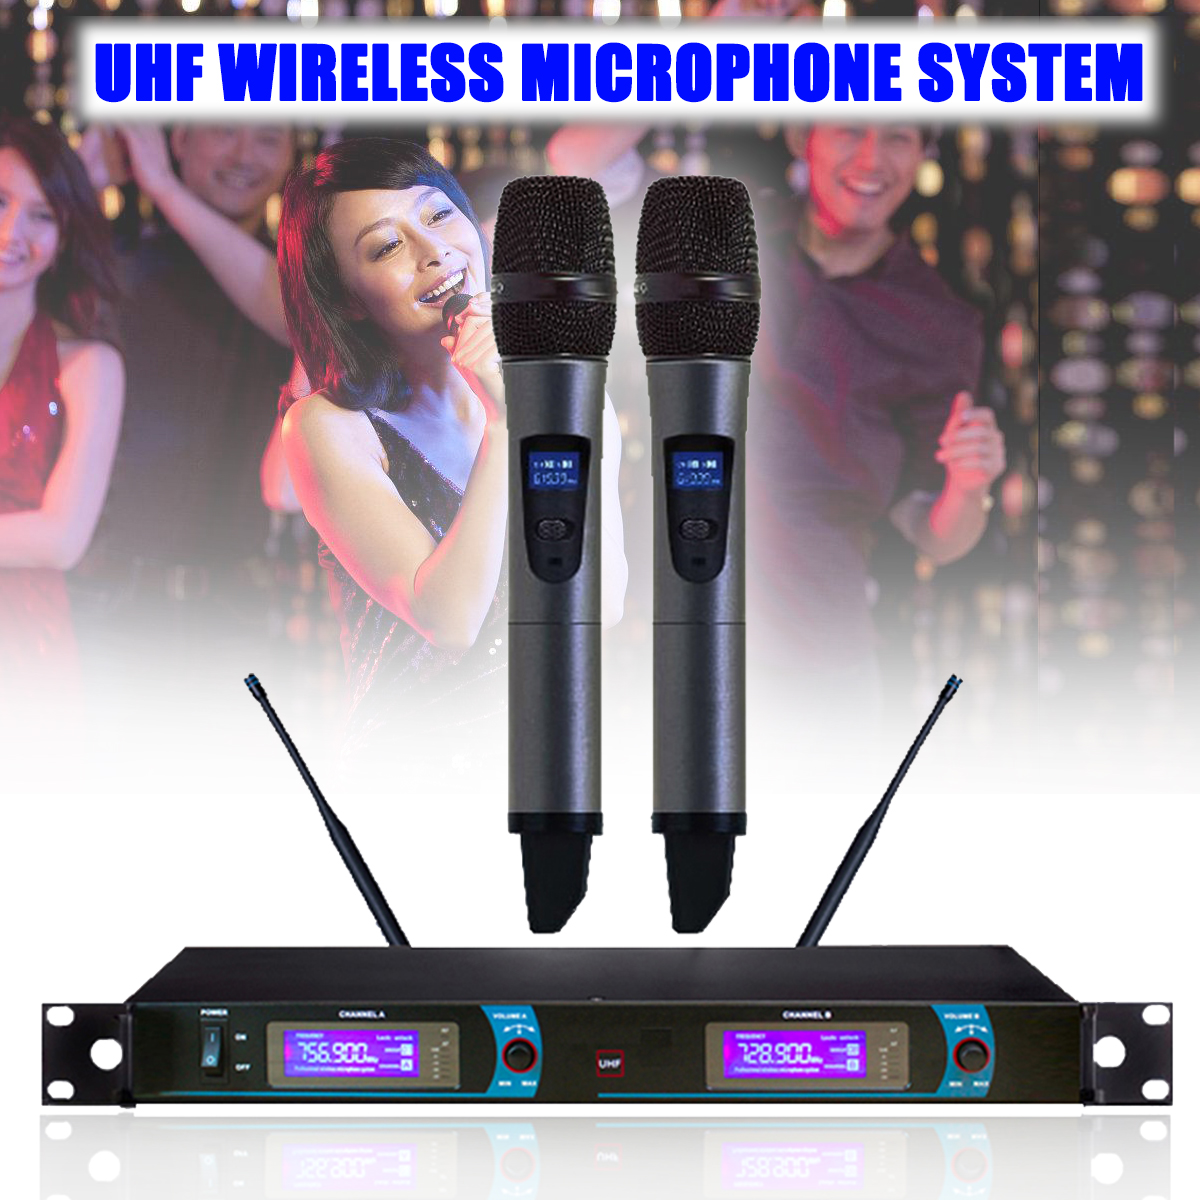 Karaoke DJ Wireless Microphone Profesional LCD Display UHF Wireless Dual Handheld Microphone Mic System Home KTV wireless microphone professional handheld microfone condenser fm bluetooth mic with receiver uhf mic for karaoke ktv system